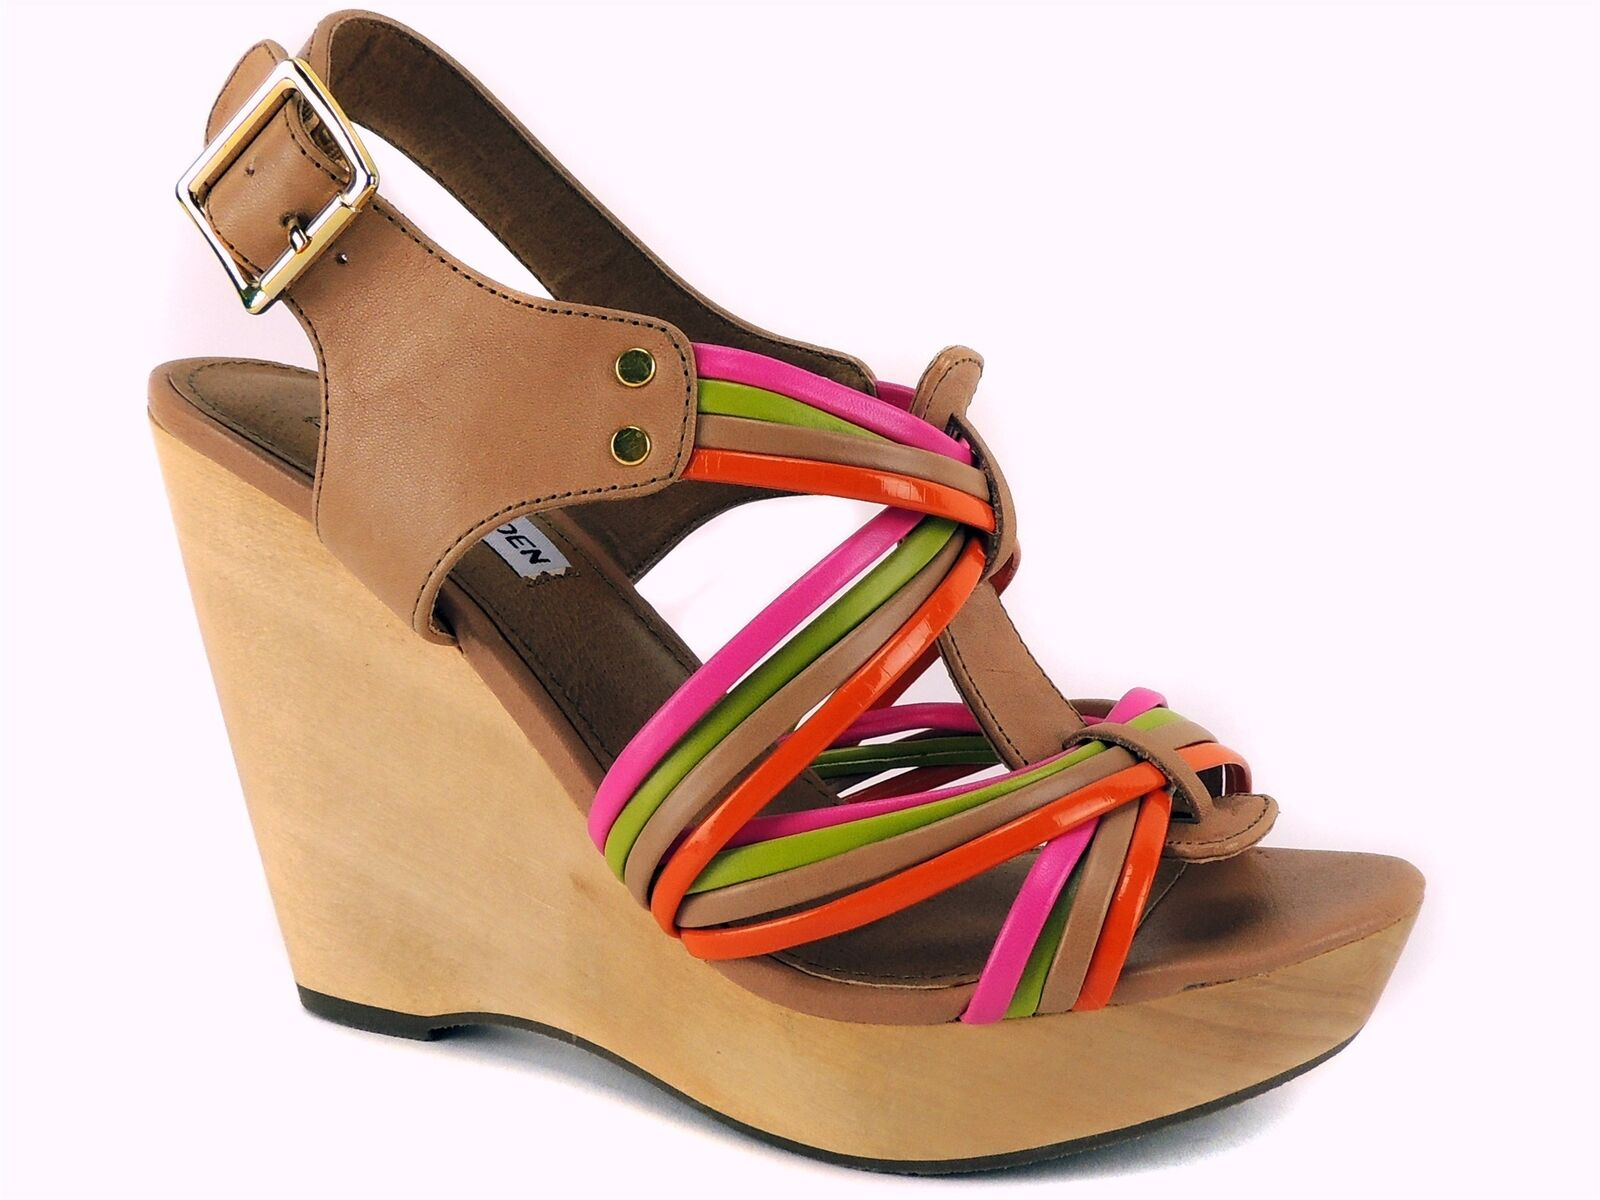 Madden Girl Women's Tampaa Wedge Sandals Multi Color Leather